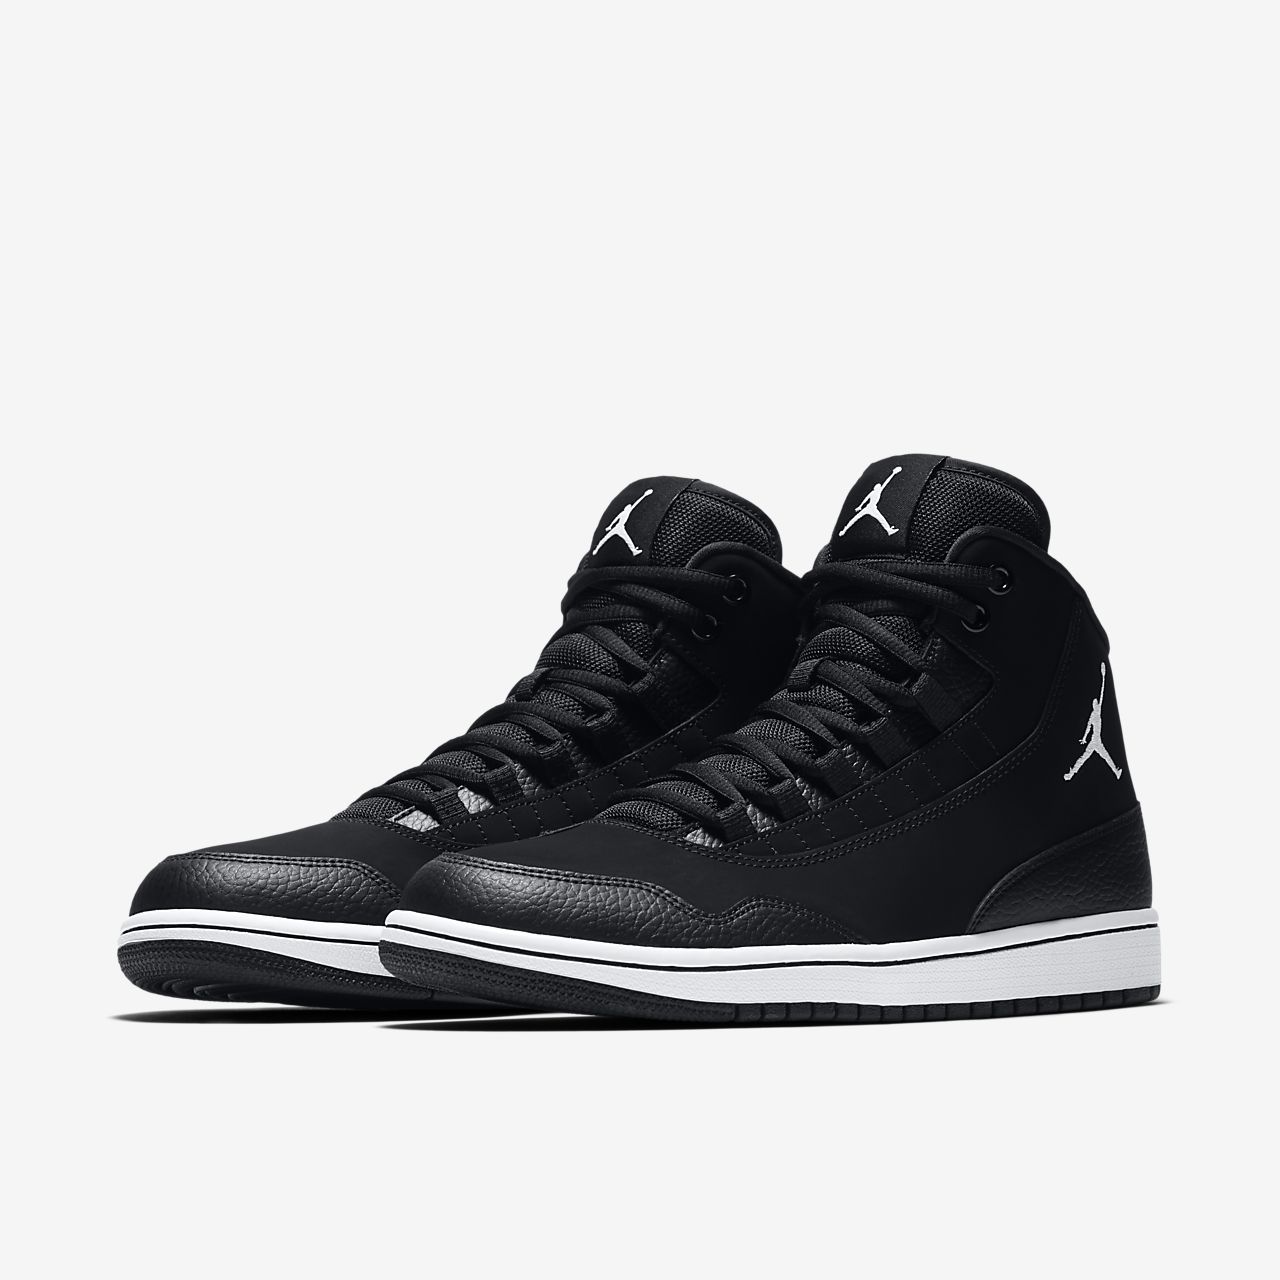 the latest a6ee6 887bb Ma Jordan Pour Executive Homme Chaussure wgxTB4ZqYx